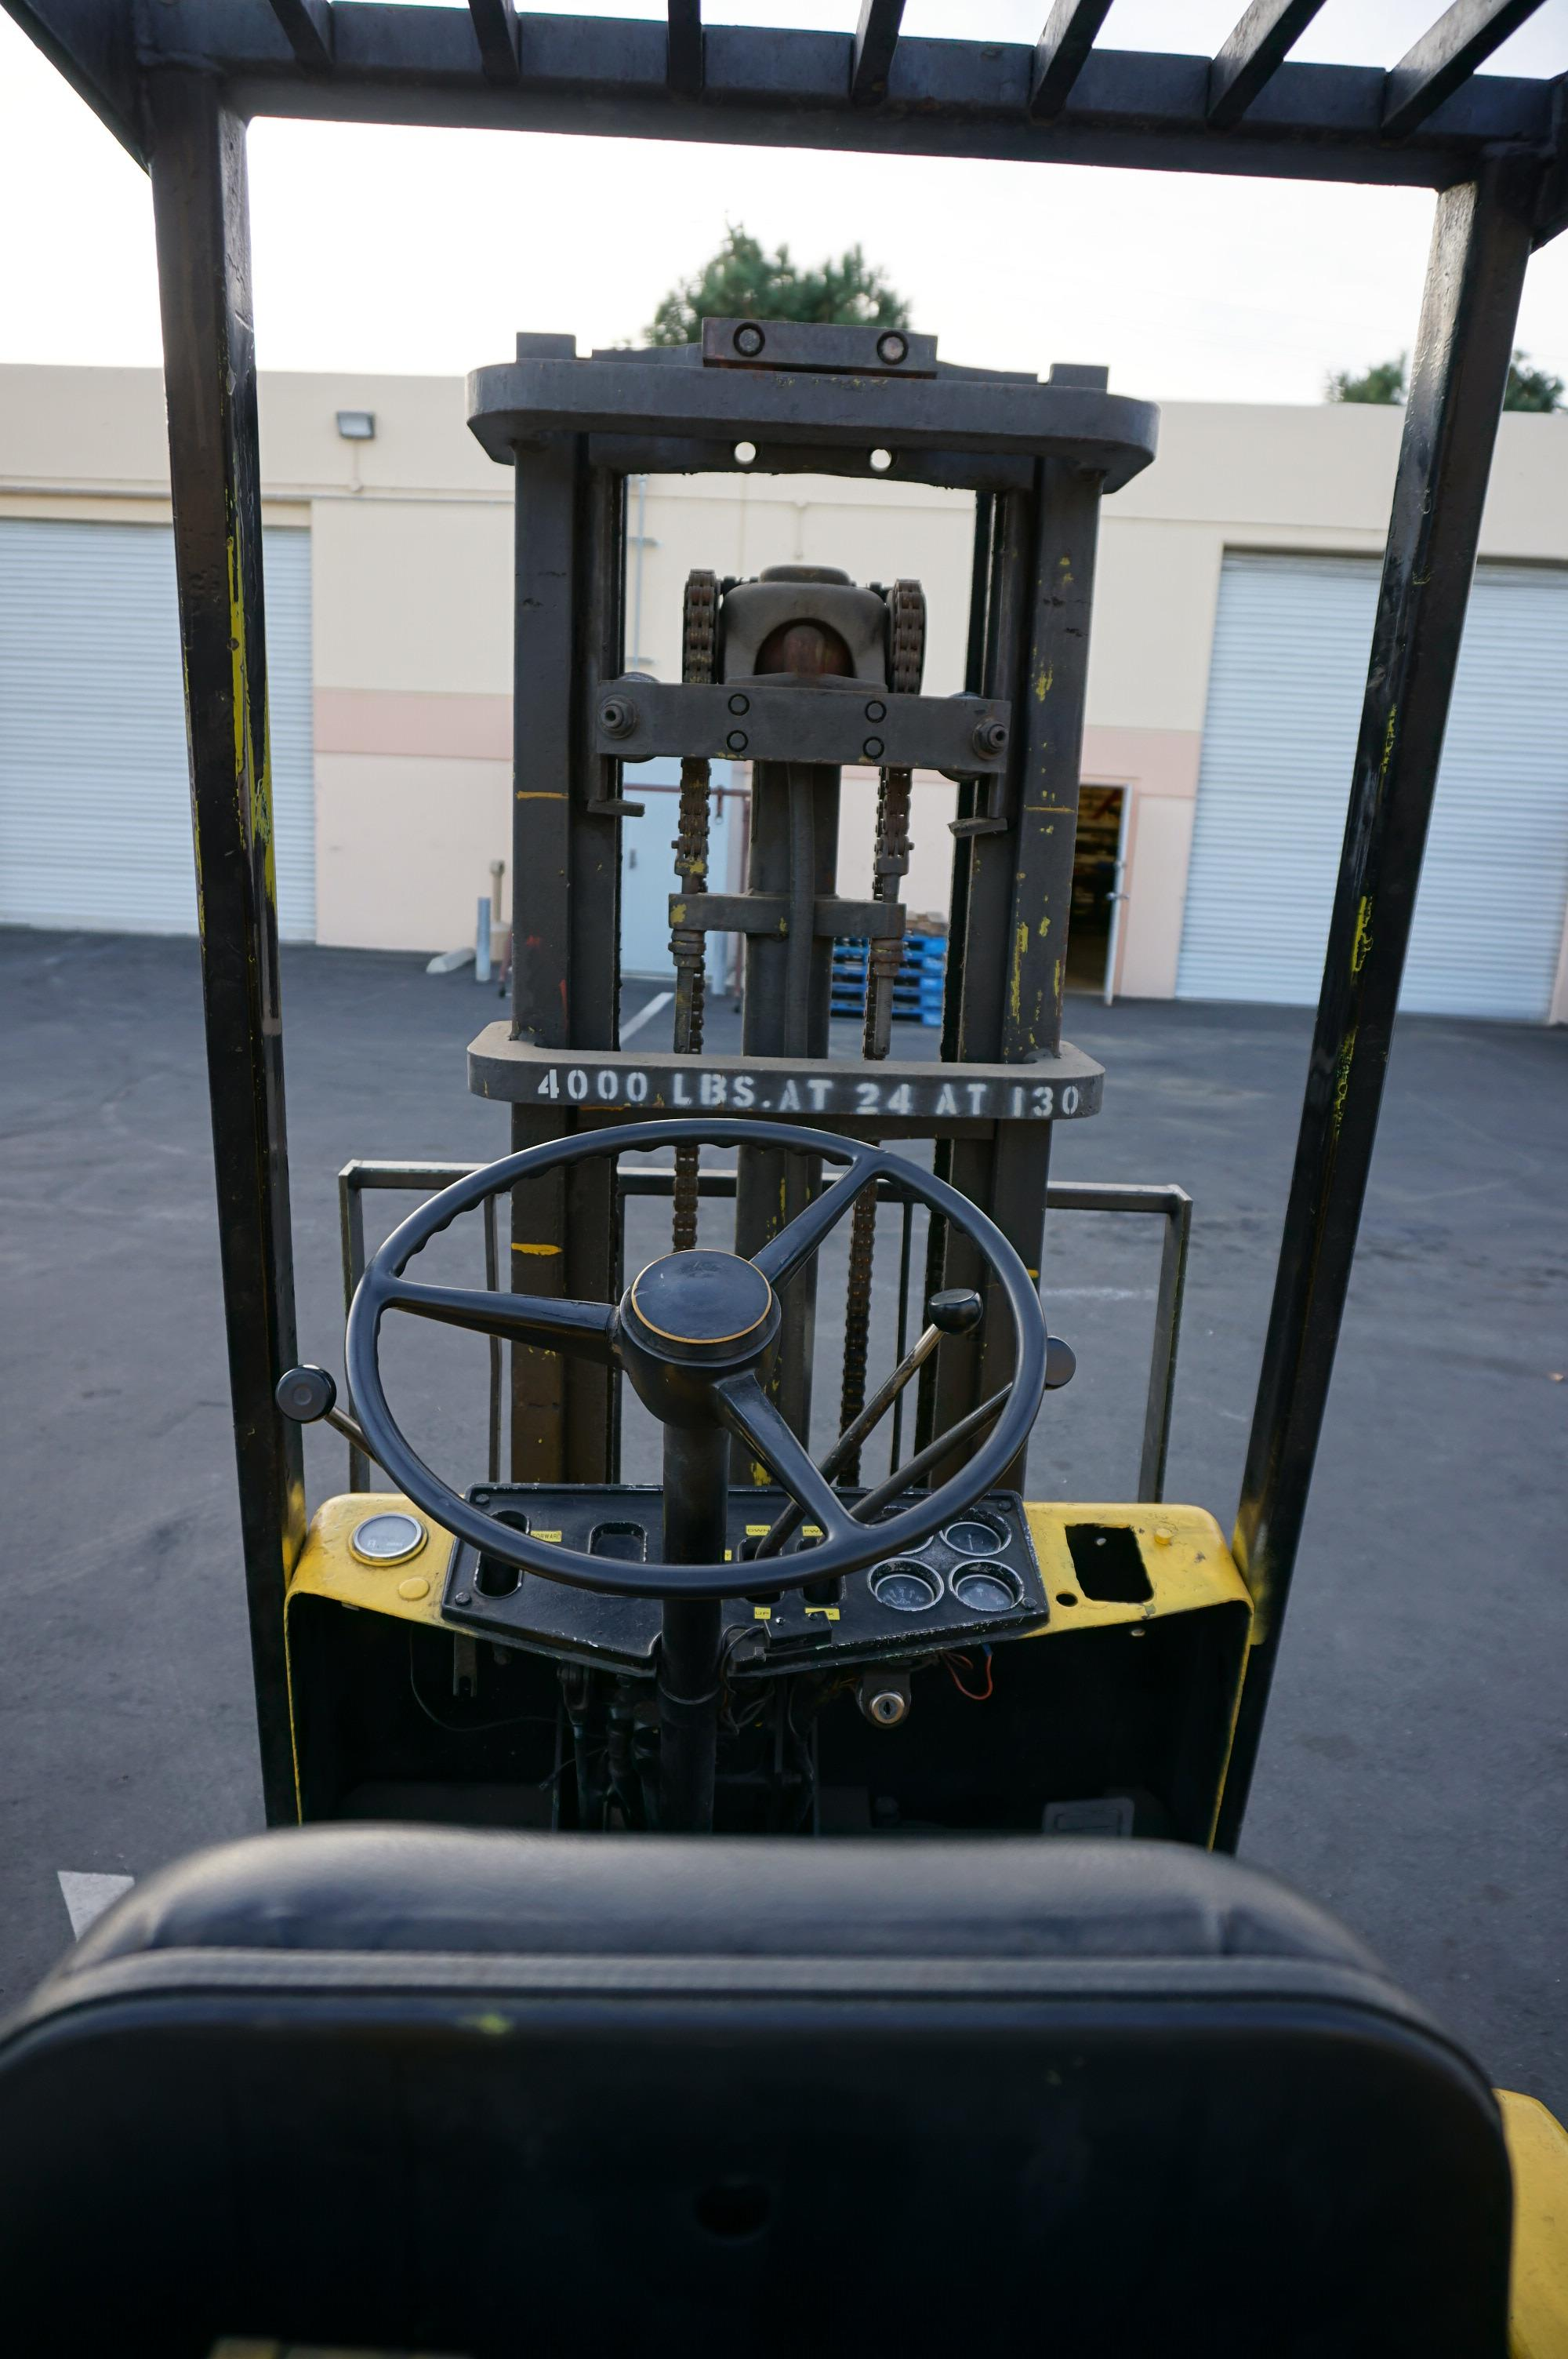 CLARK C50 FORKLIFT 4000 LB CAP, S/N 355-1488-3611, WITH ORIGINAL MANUALS AND CATALOGS - Image 5 of 7